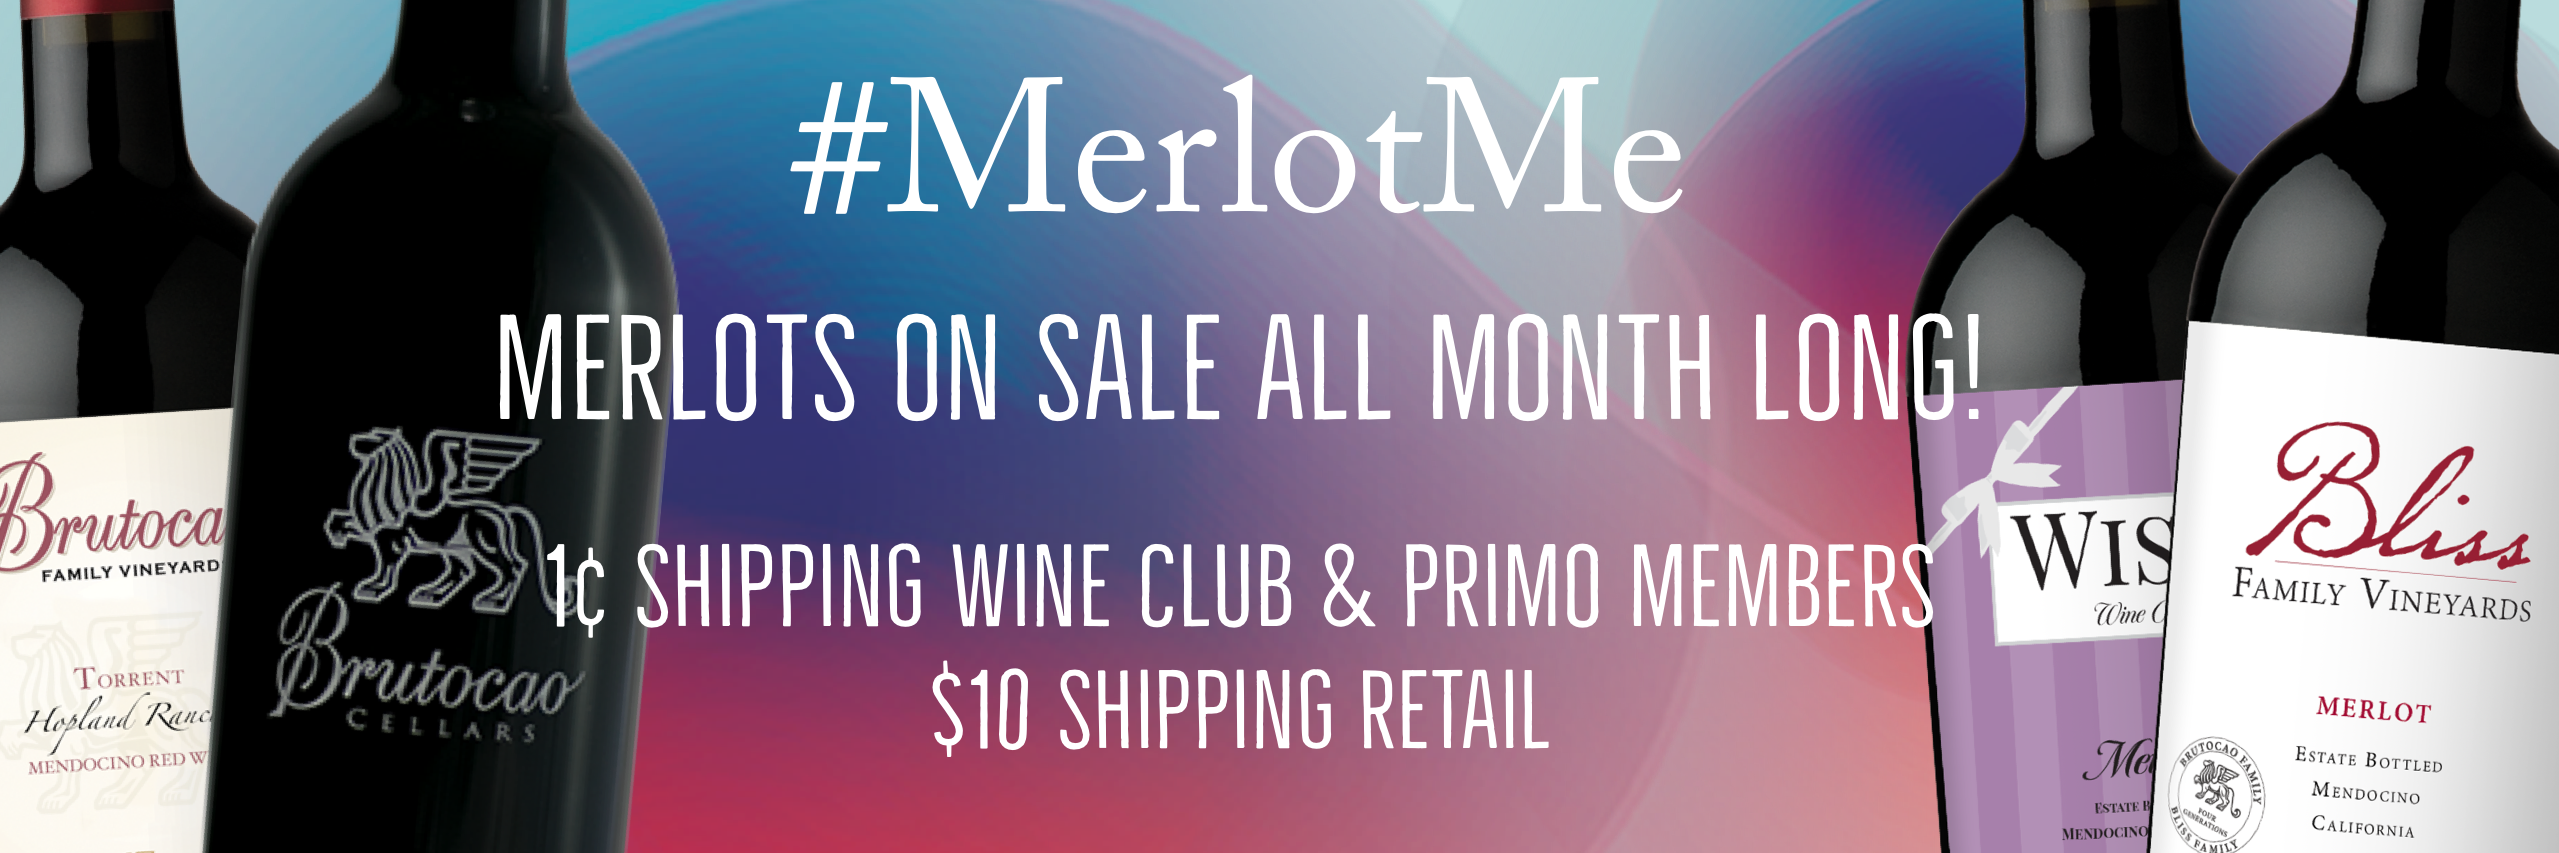 Merlot Sale the month of October